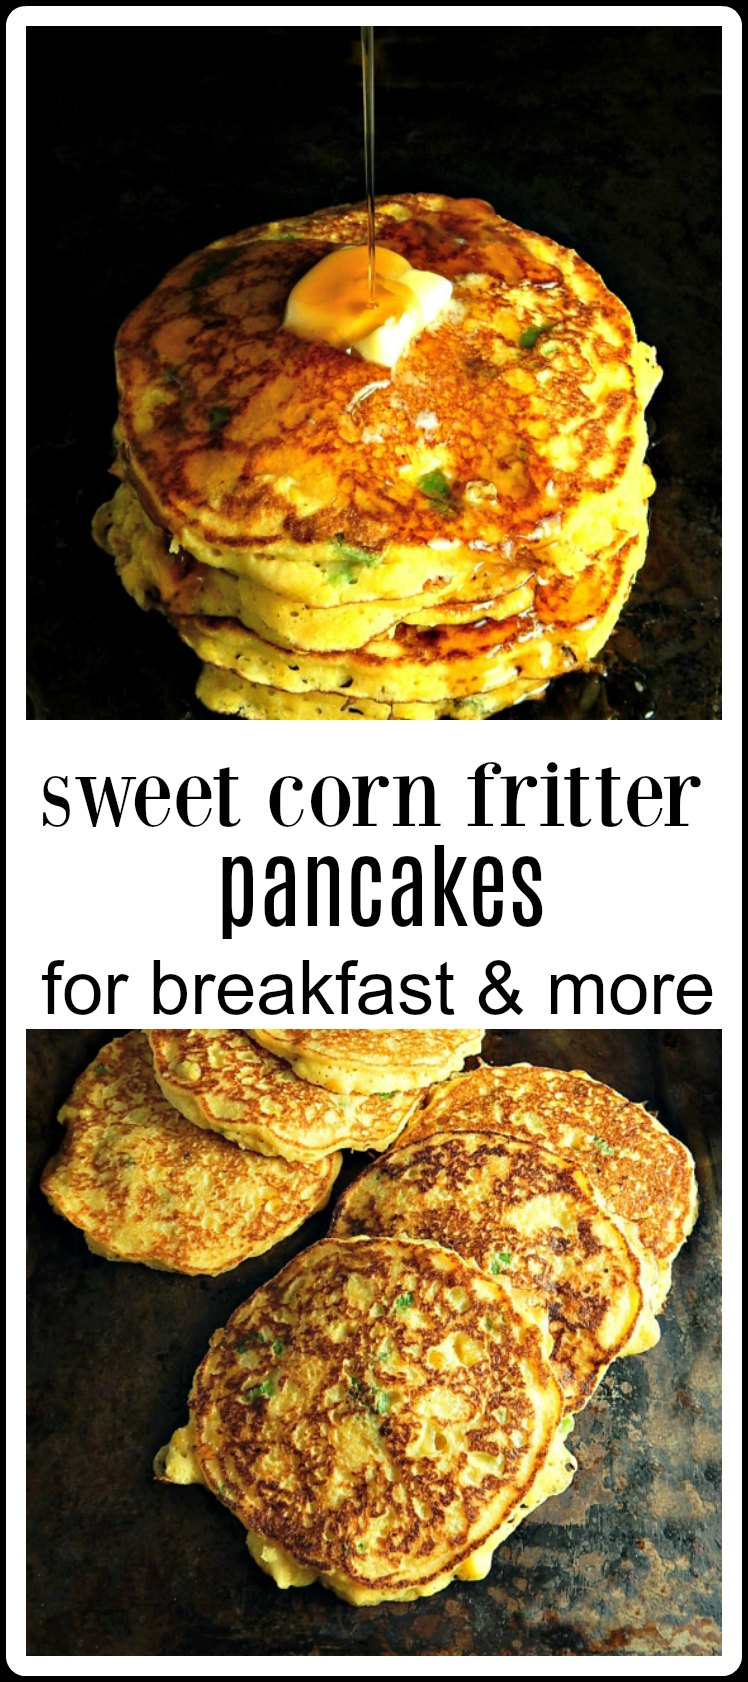 Corn Fritter pancakes straddle the line between sweet & savory. Great for breakfast, but even better used anywhere a biscuit could go - like with barbecue. Pile them high with your favorite Brisket, Pulled Pork or Pulled Chicken #CornPancakes #CornFritters #CornFritterPancakes